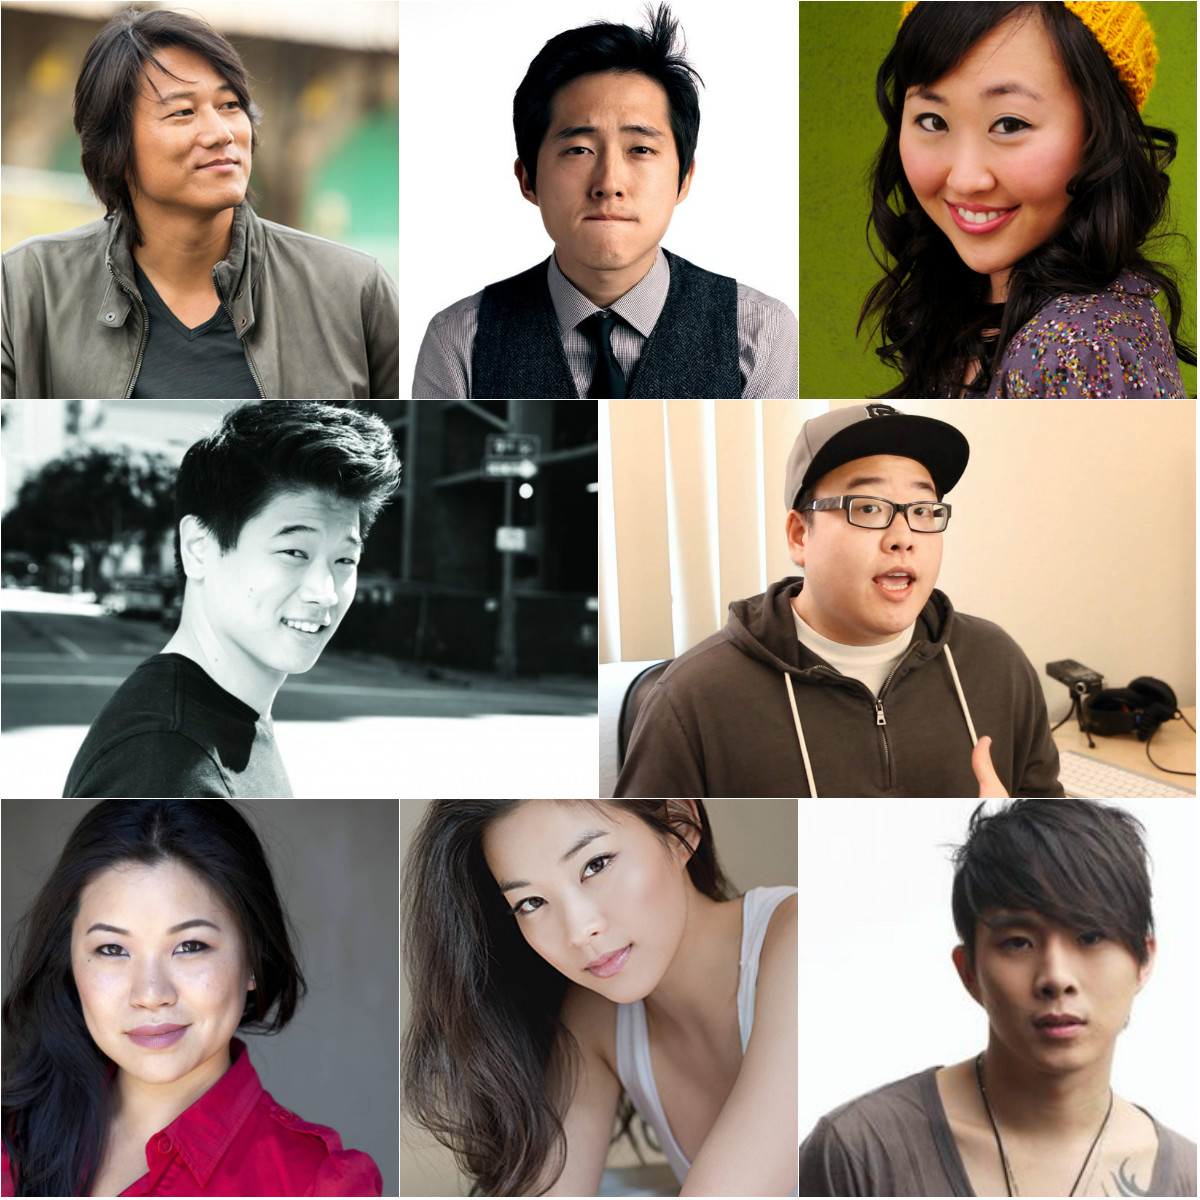 photo collage display ideas - 8 Korean American Actors Who Should Be in K Dramas